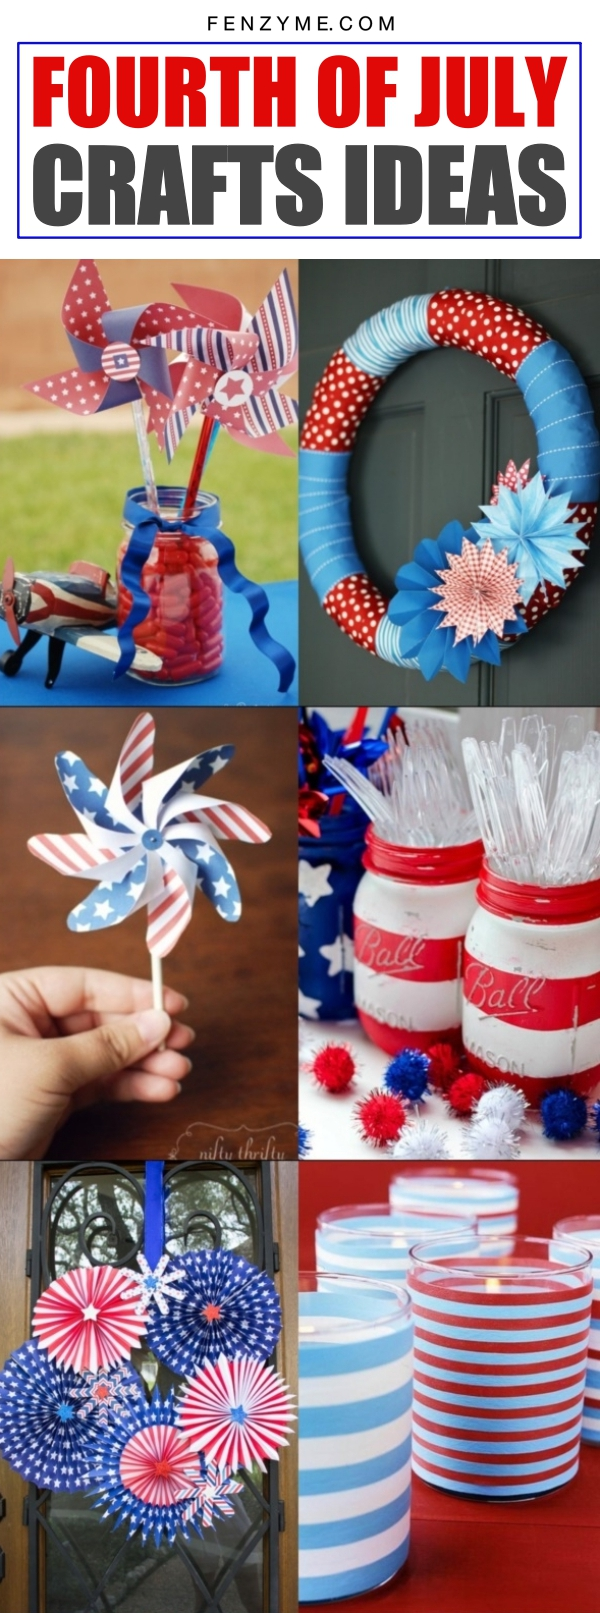 Fourth of July Crafts Ideas